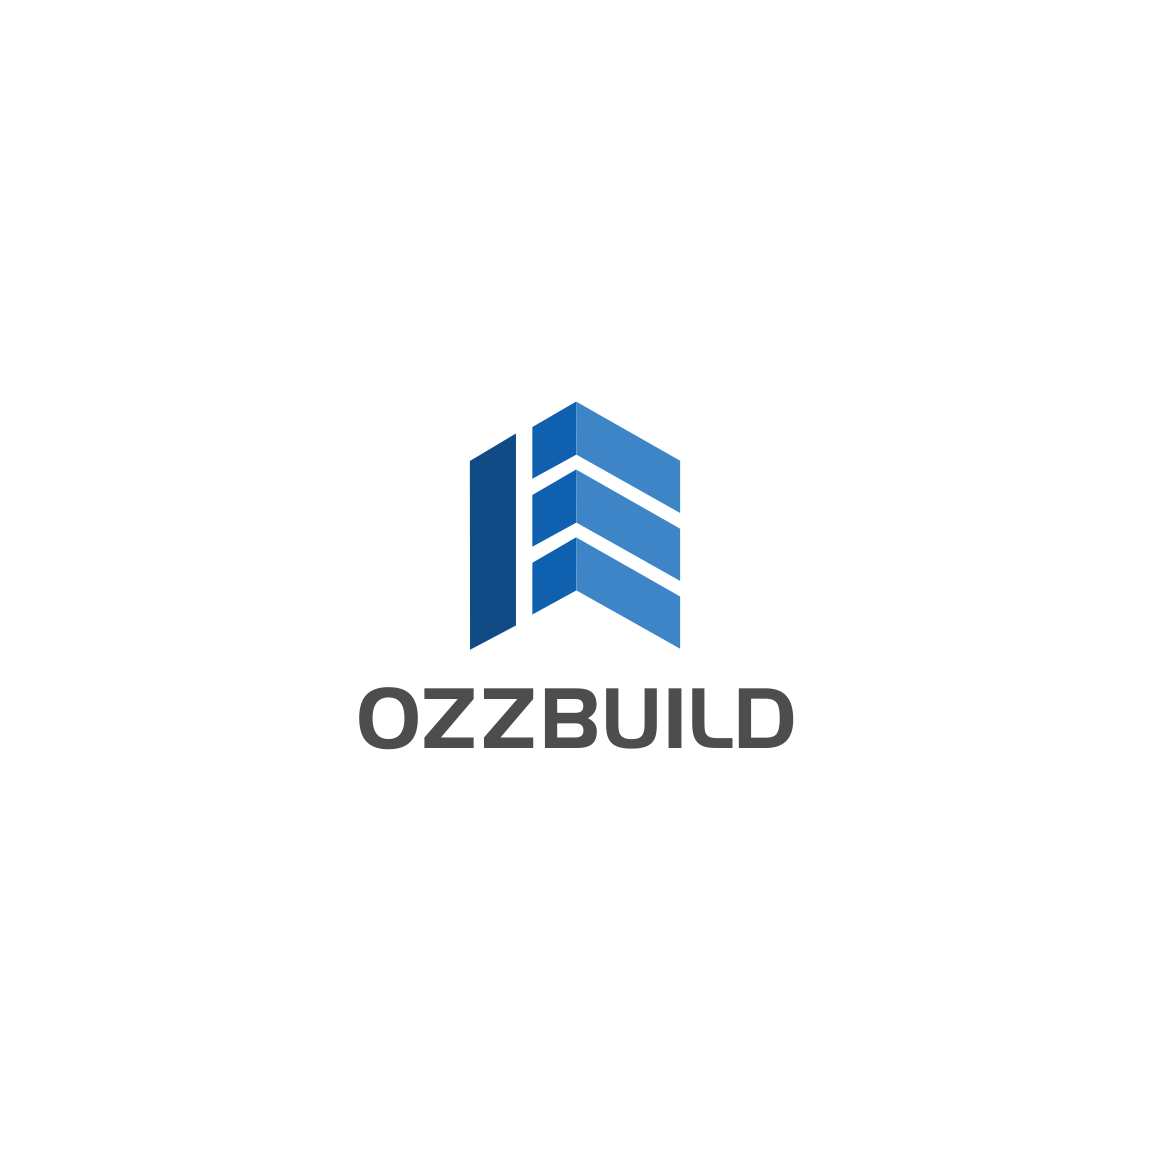 Serious modern logo design for ozzbuild by susanto83 for Designing company